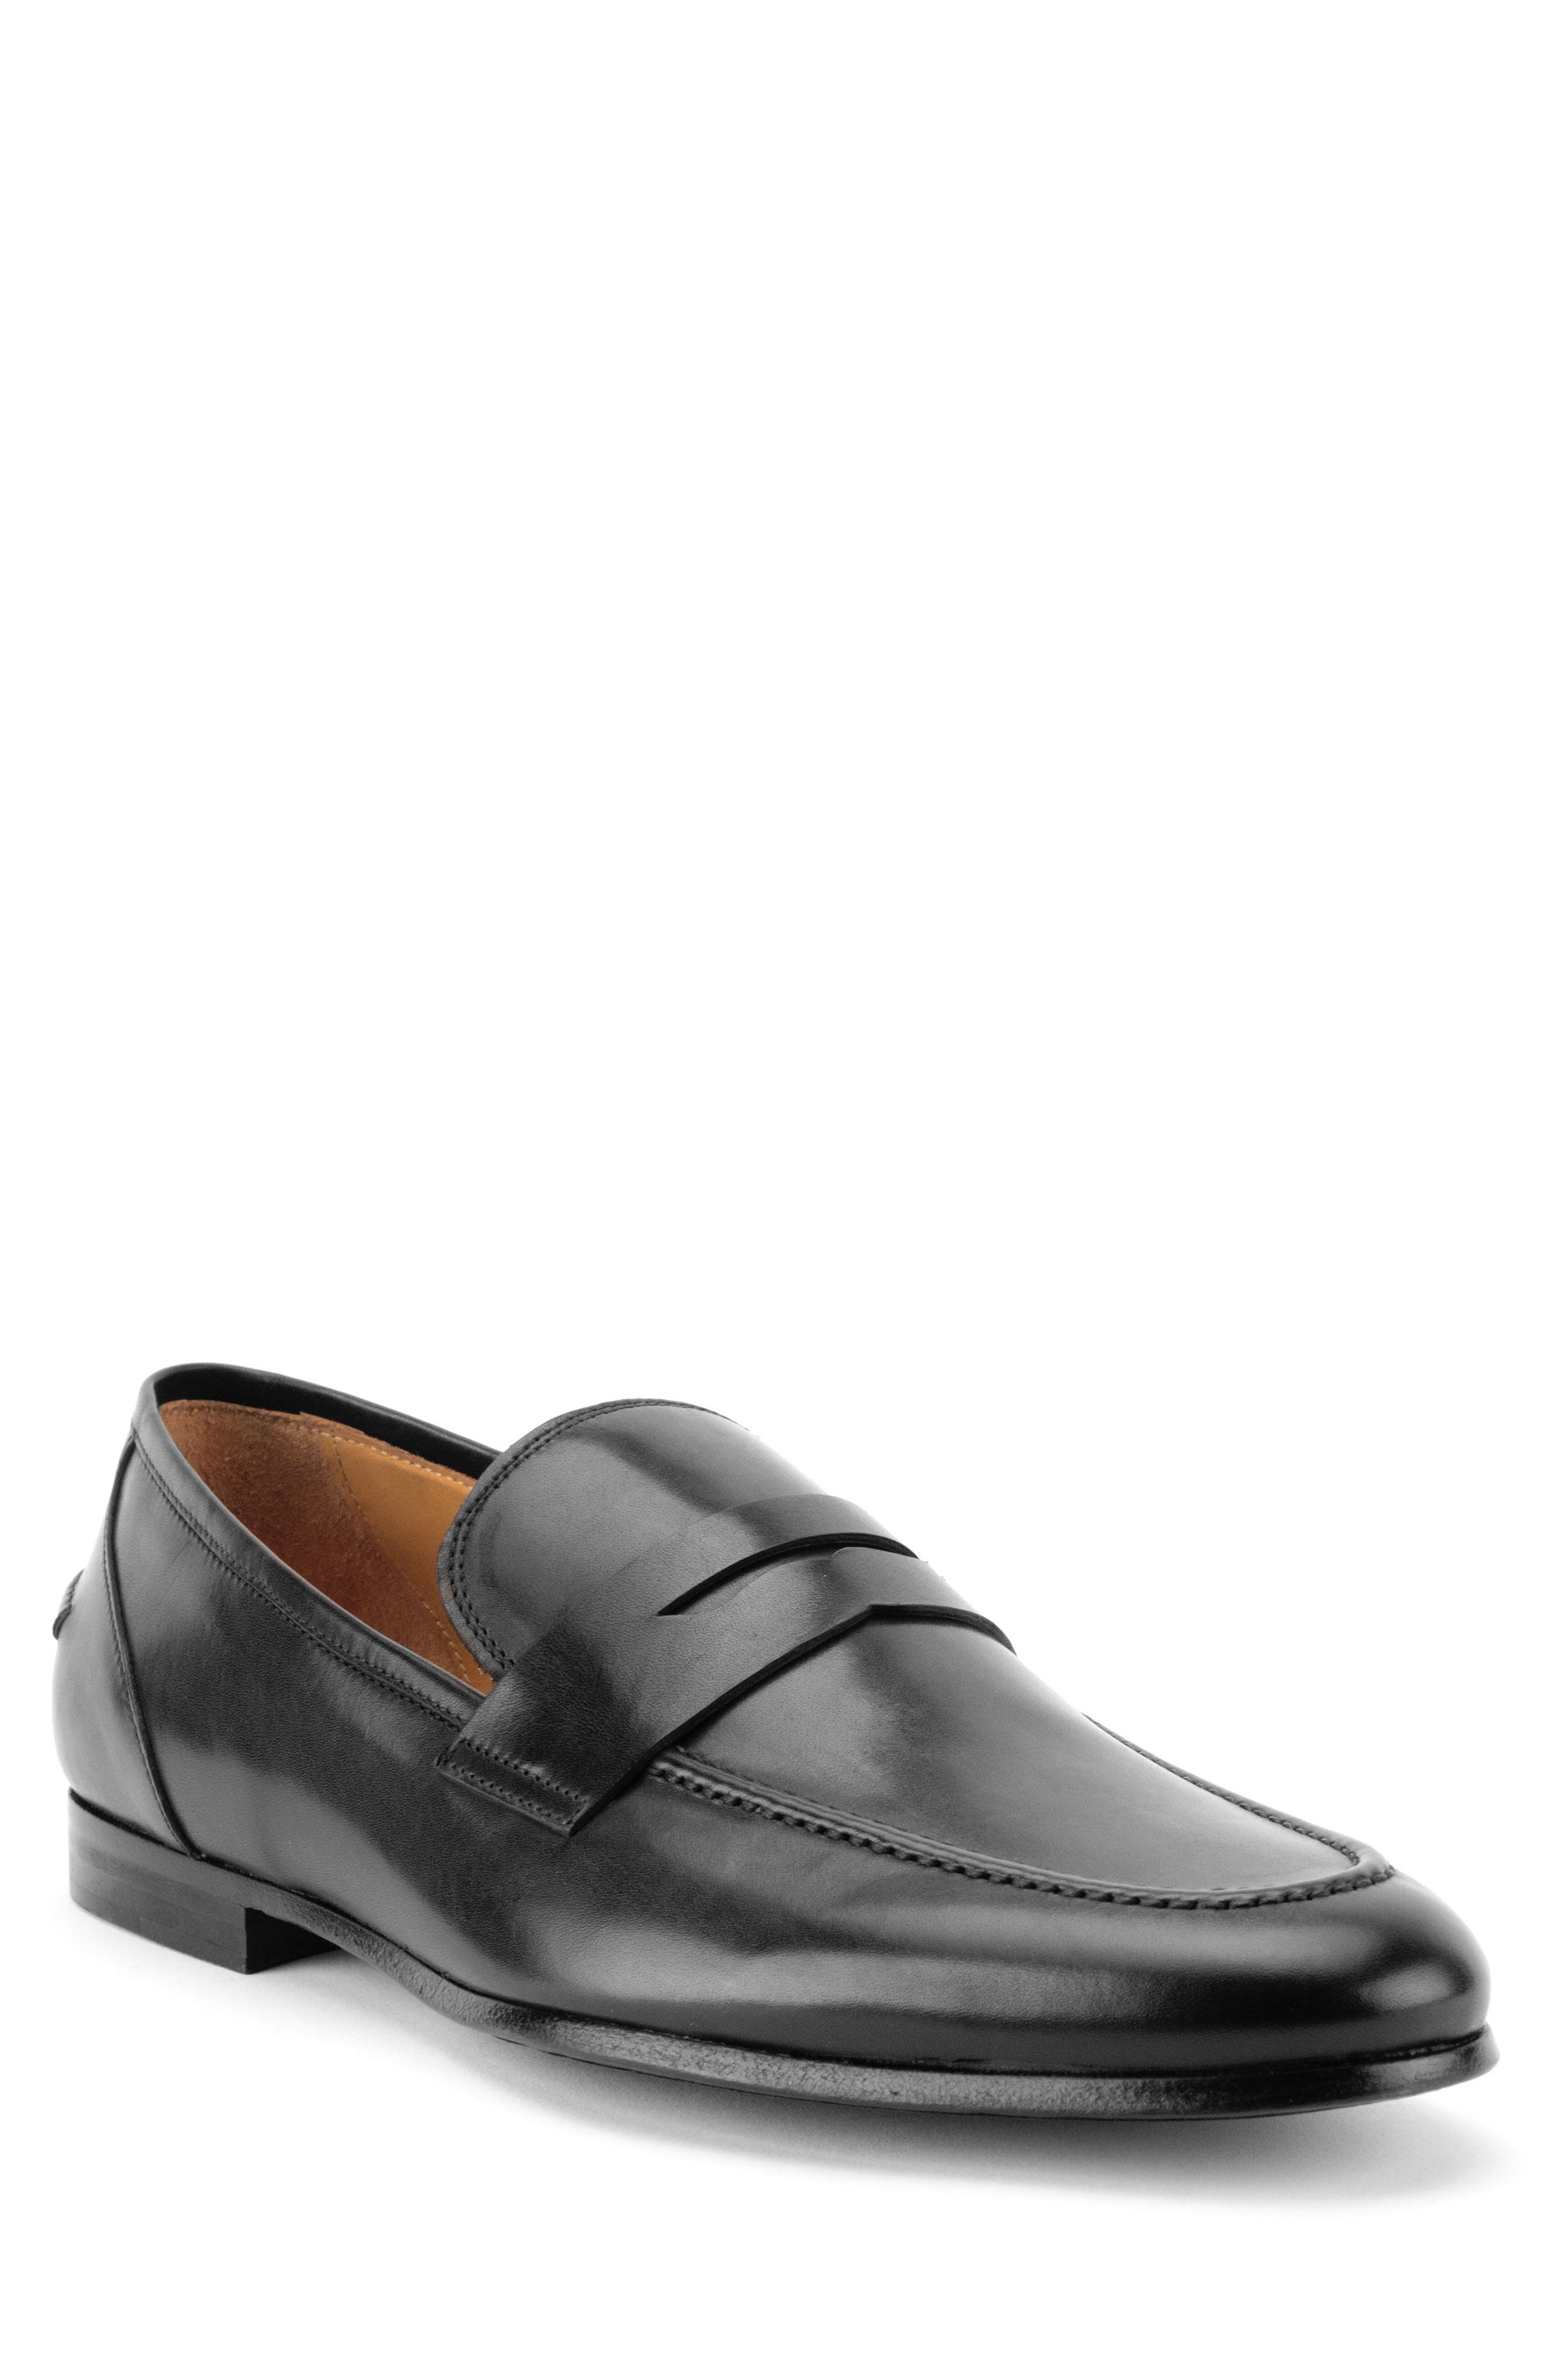 Coleman Apron Toe Penny Loafer,                             Main thumbnail 1, color,                             BLACK LEATHER